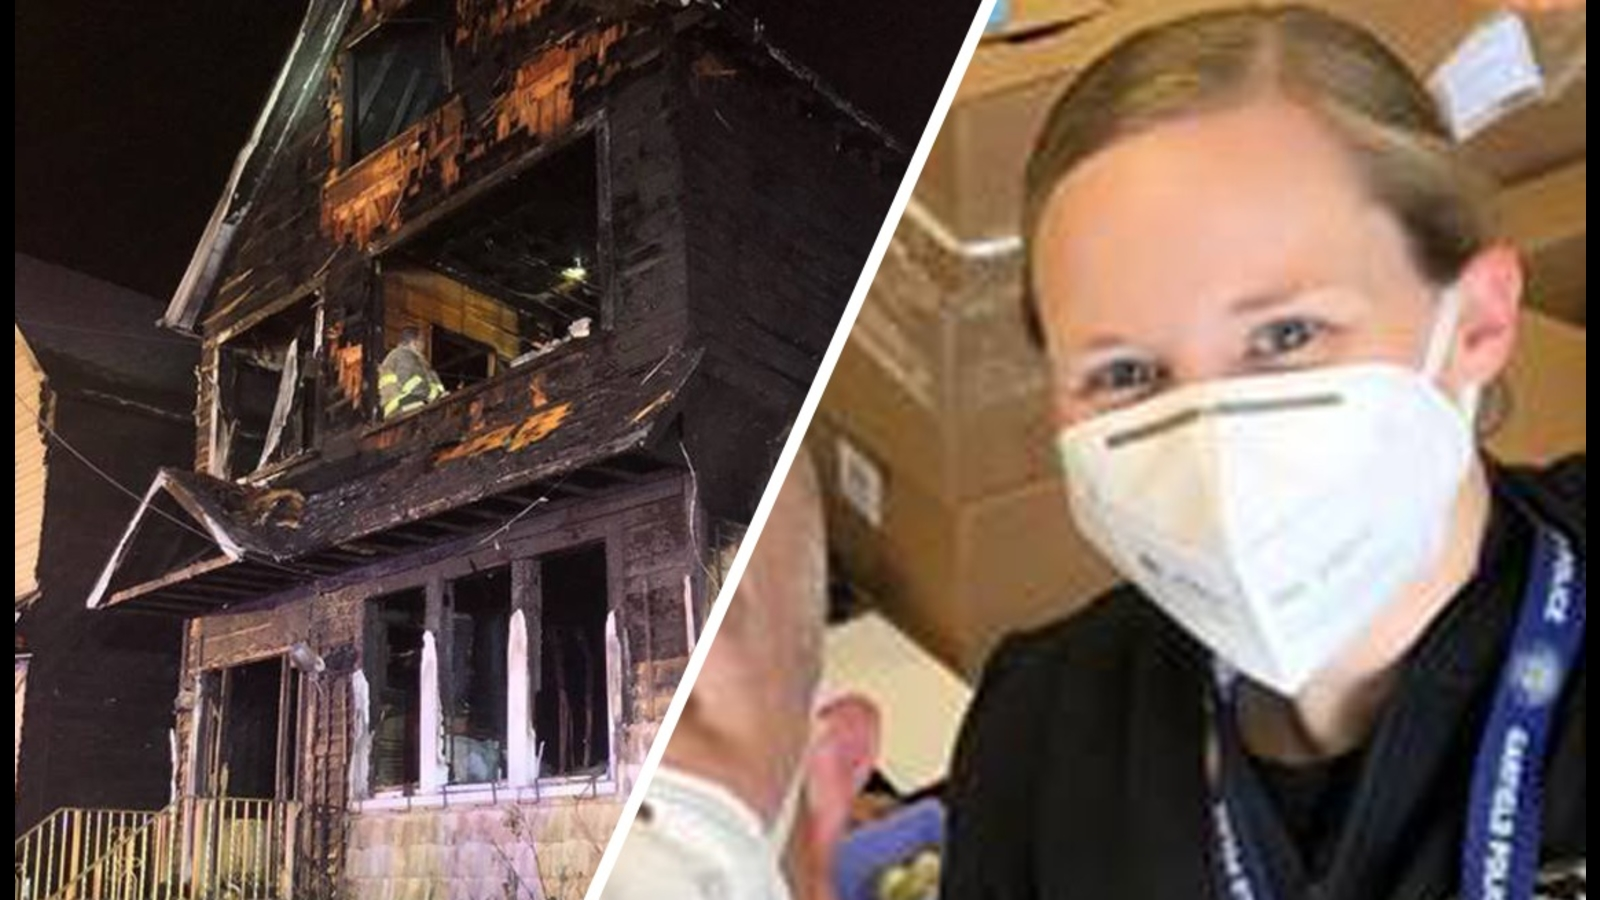 Fair Lawn Police Officer Rebecca Schmidt S Home Destroyed In Massive Fire Abc7 New York